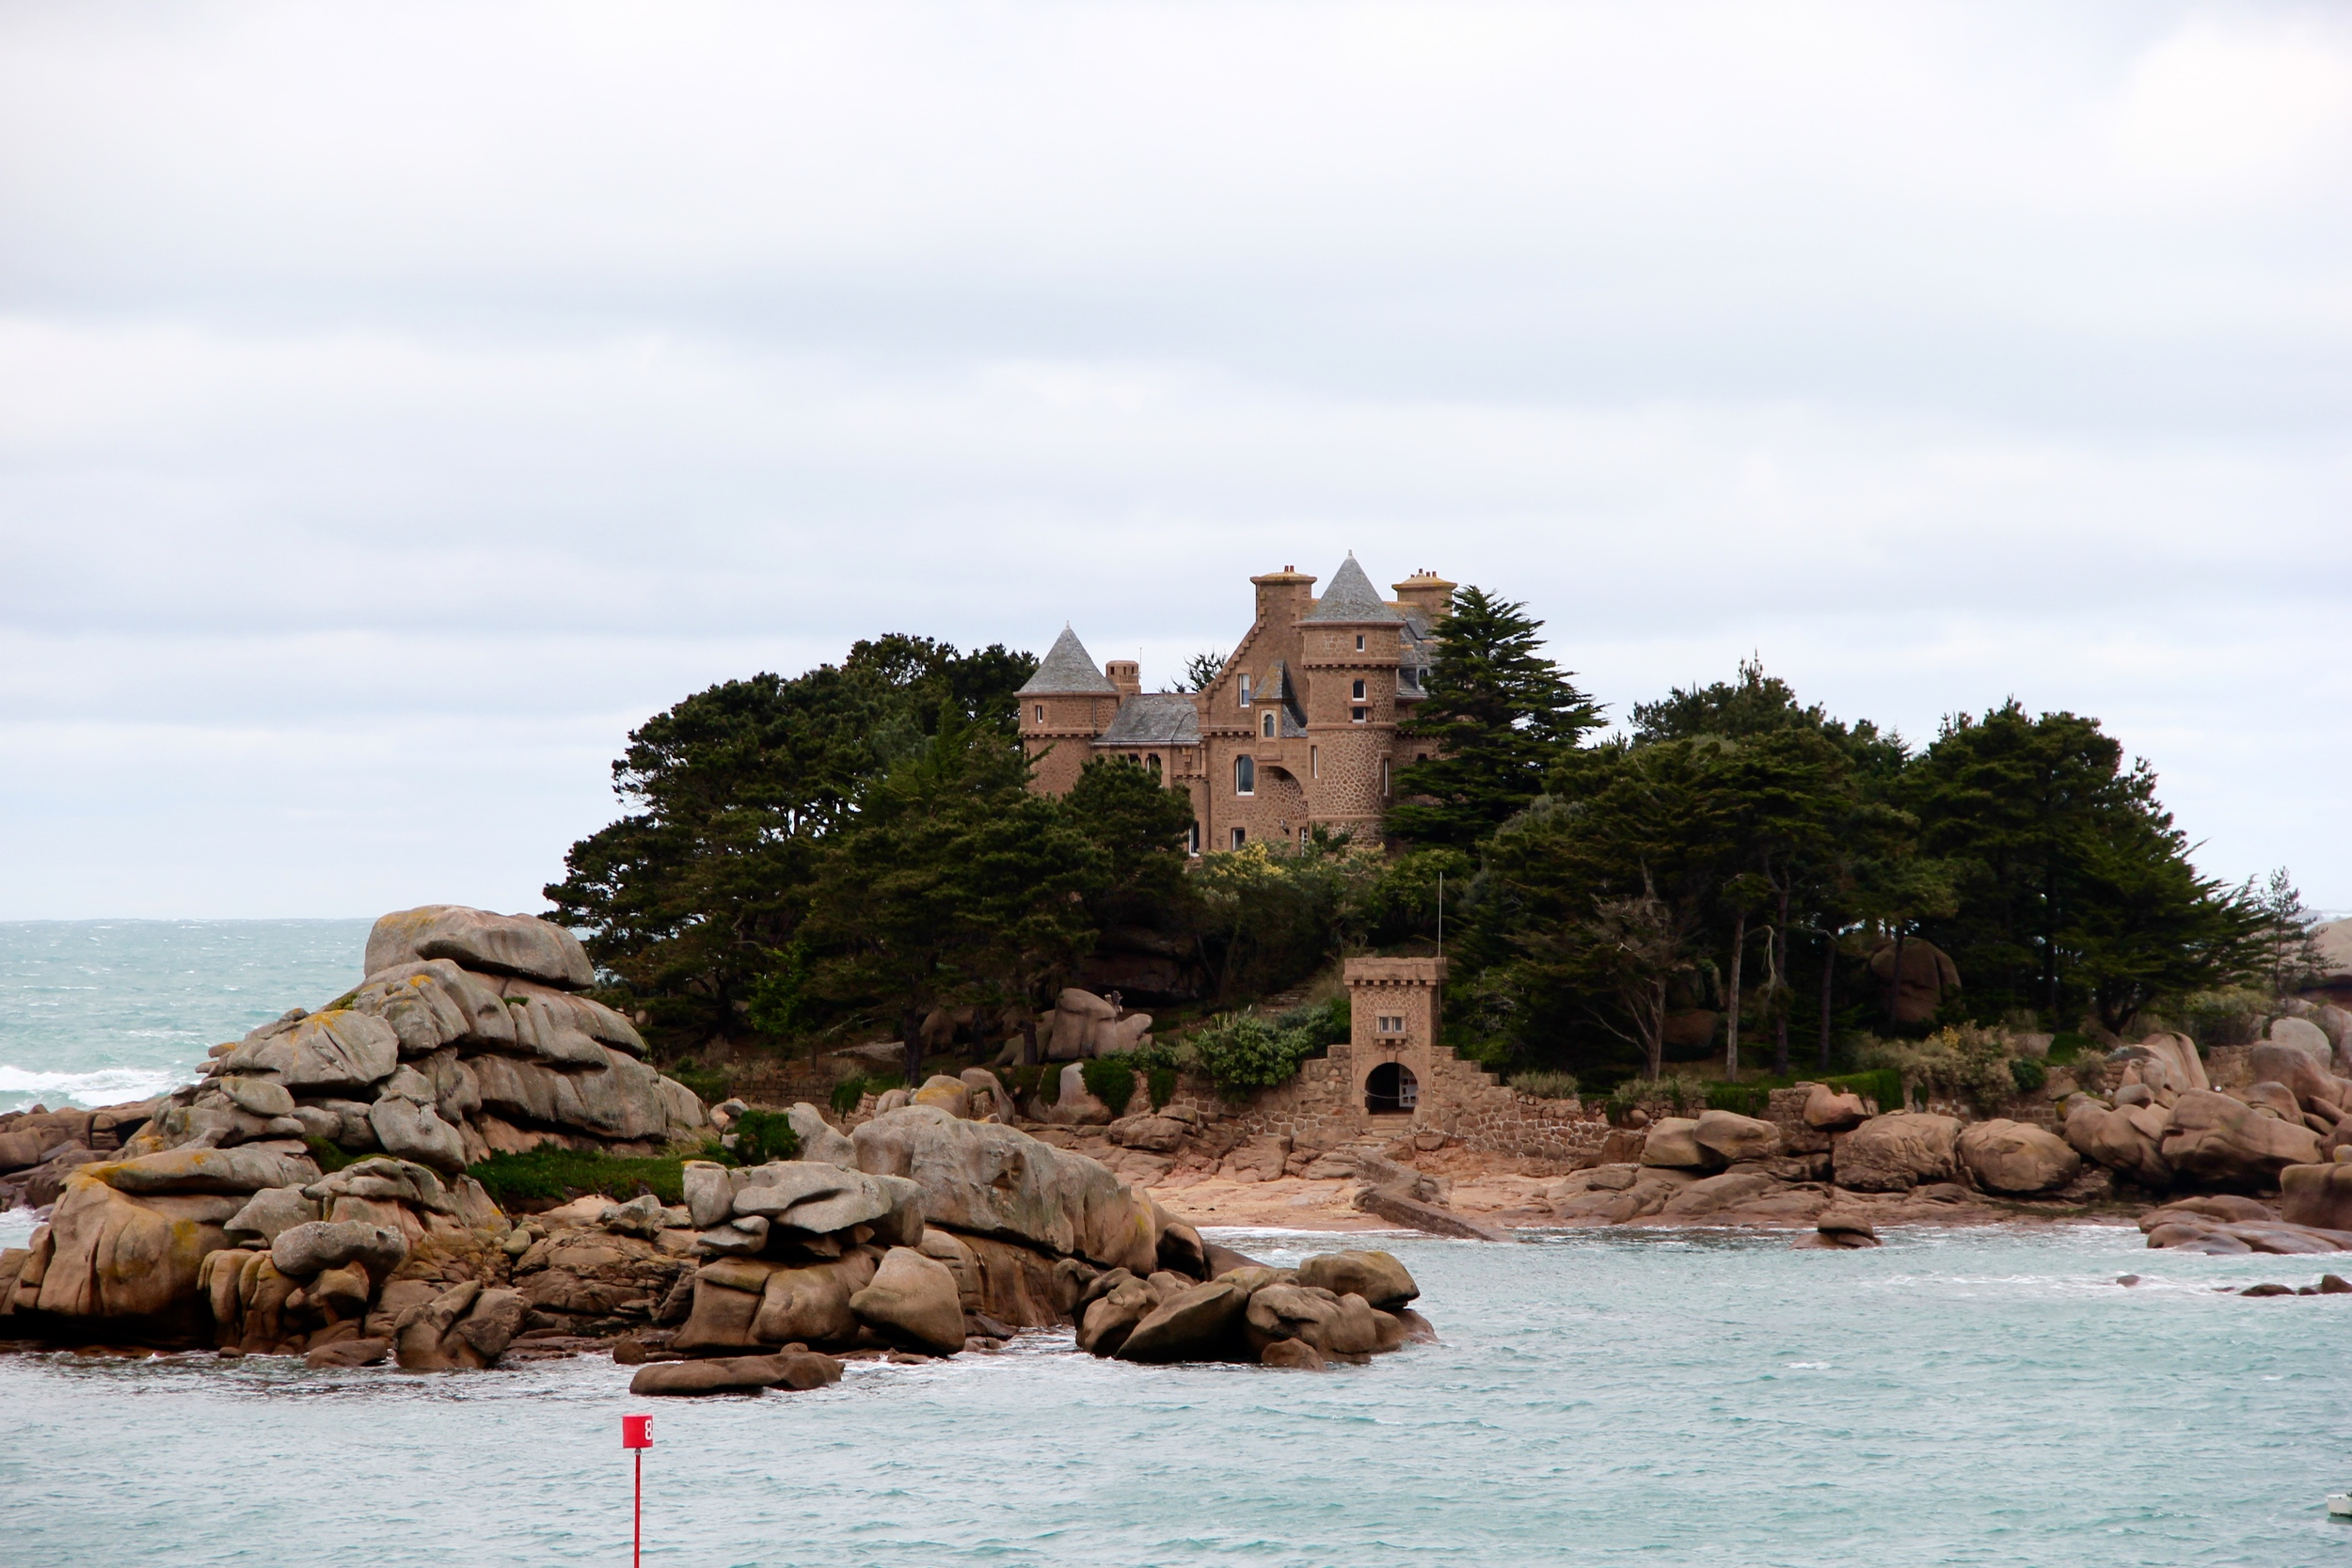 Island Castle in between Tregastel and Ploumanac'h along the Sentiers des Douaniers